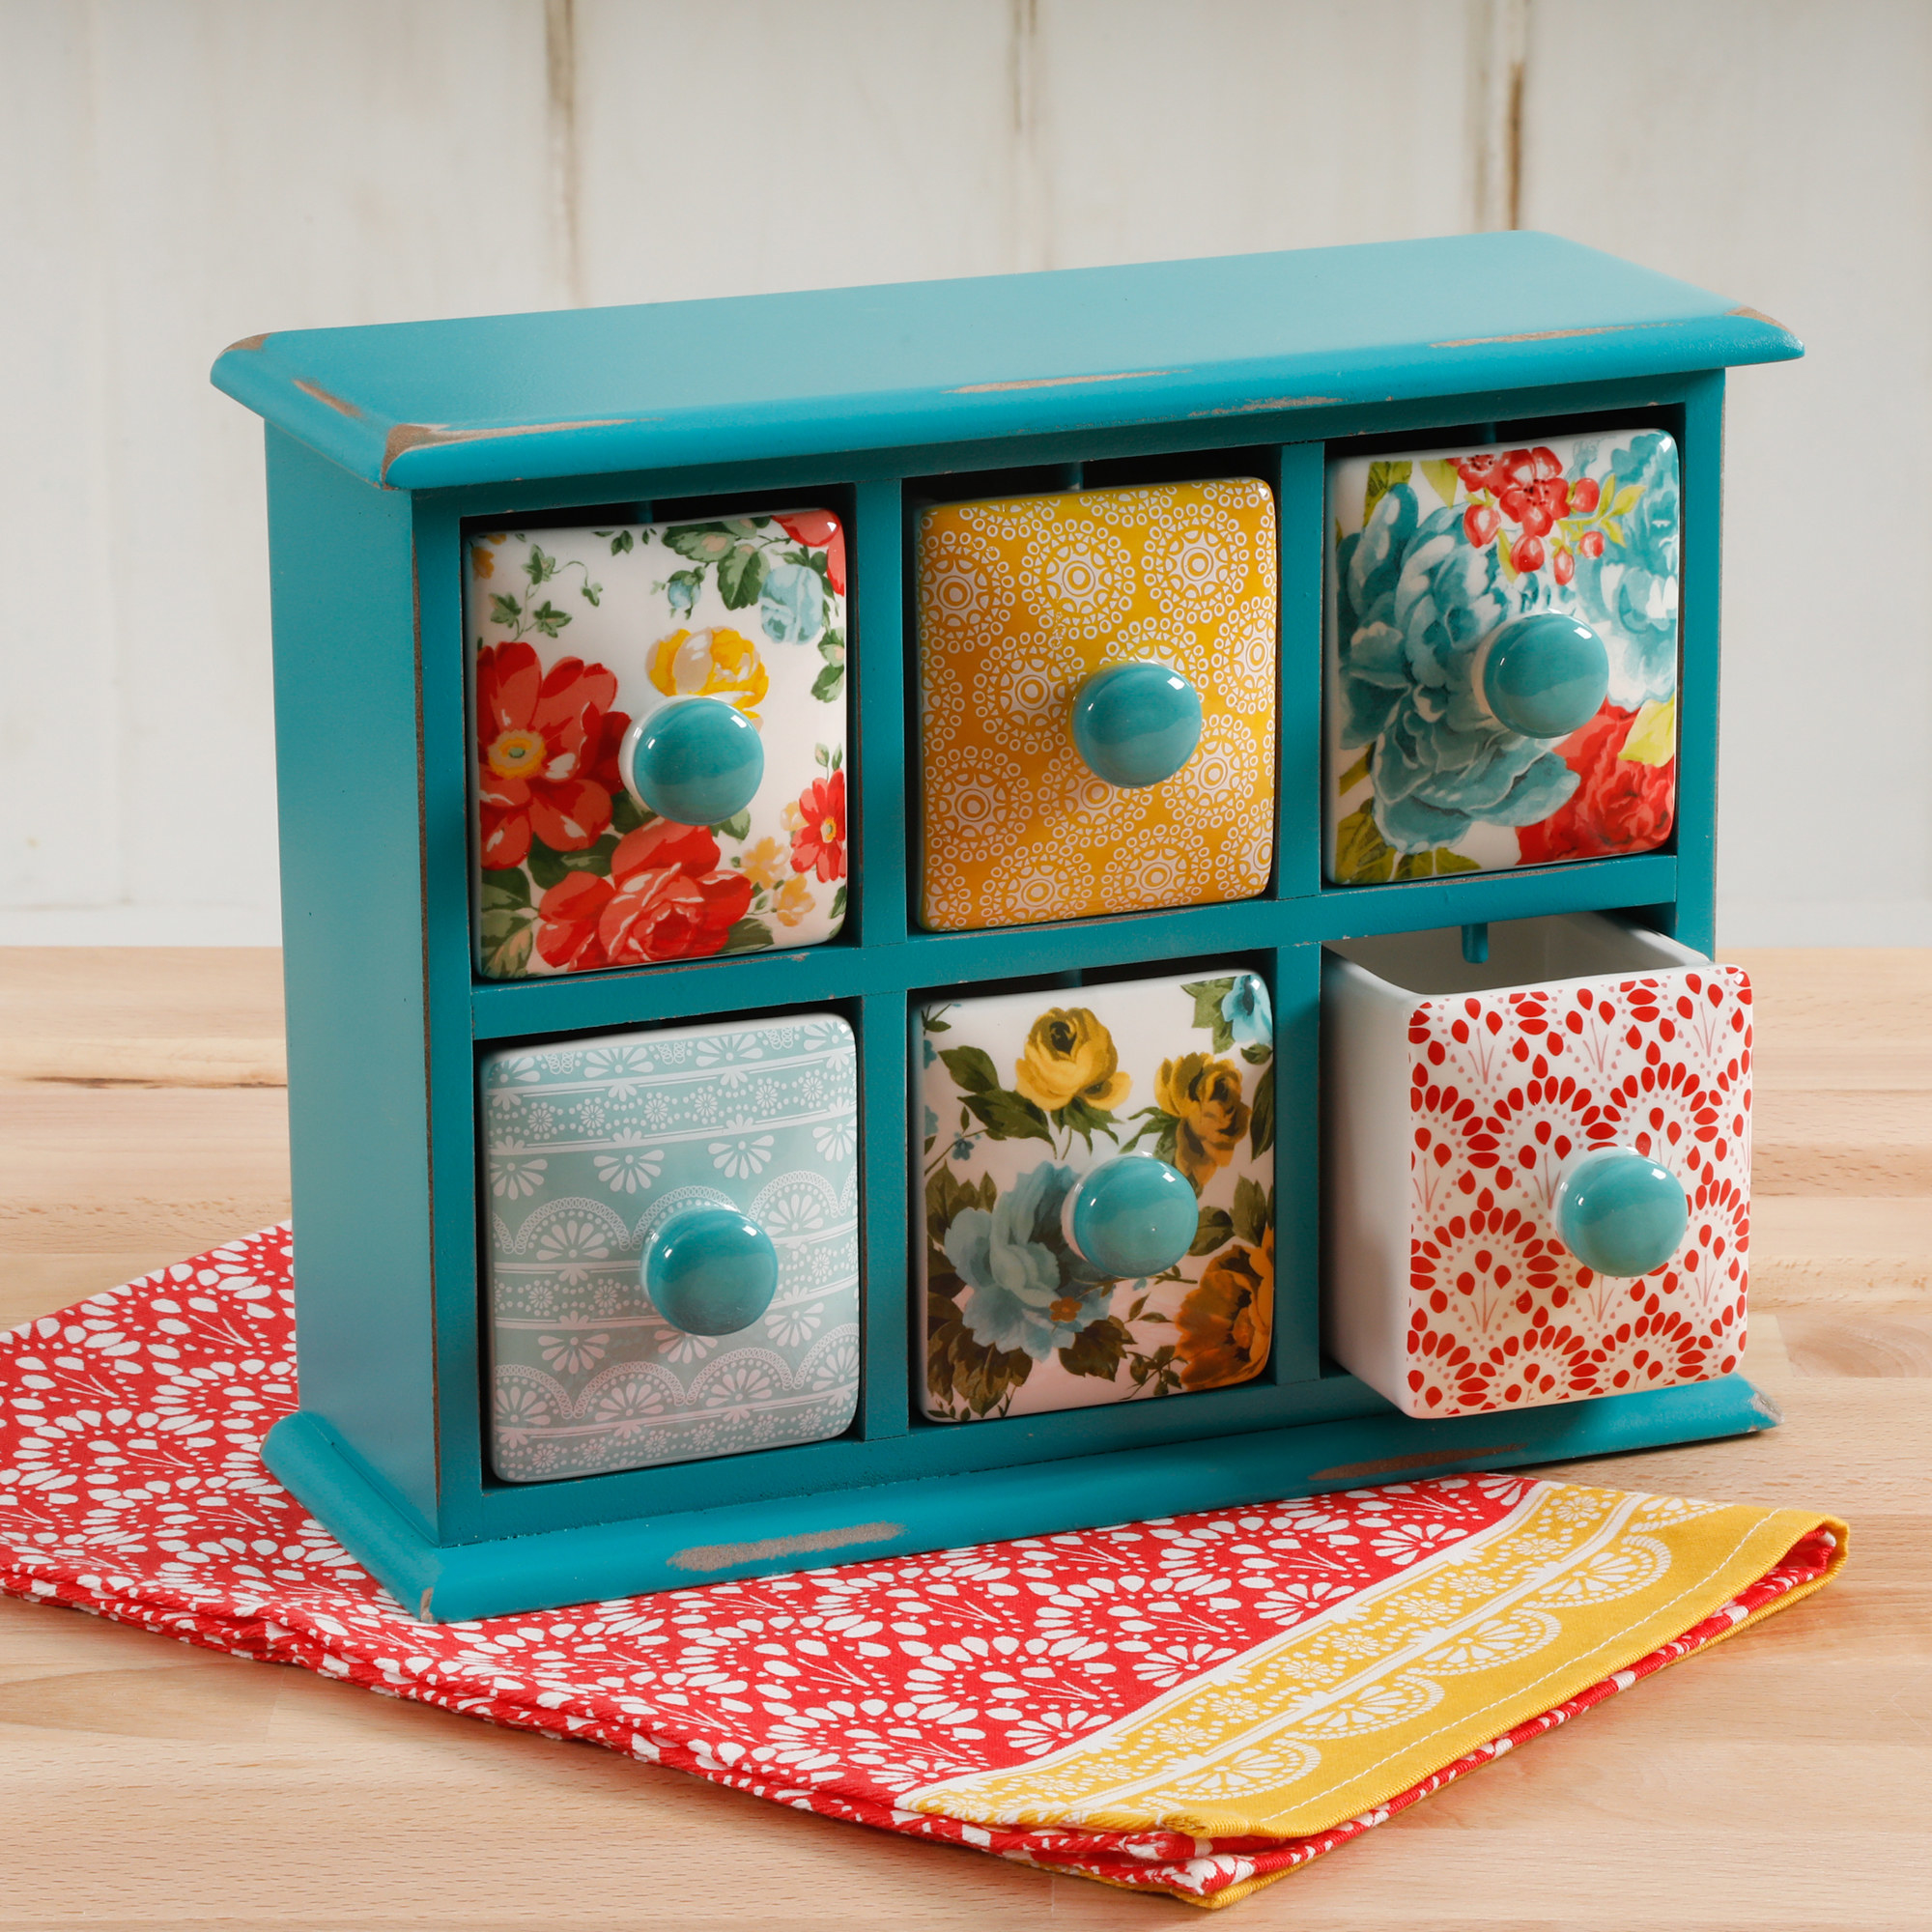 The floral and quaintly patterned mini drawer set